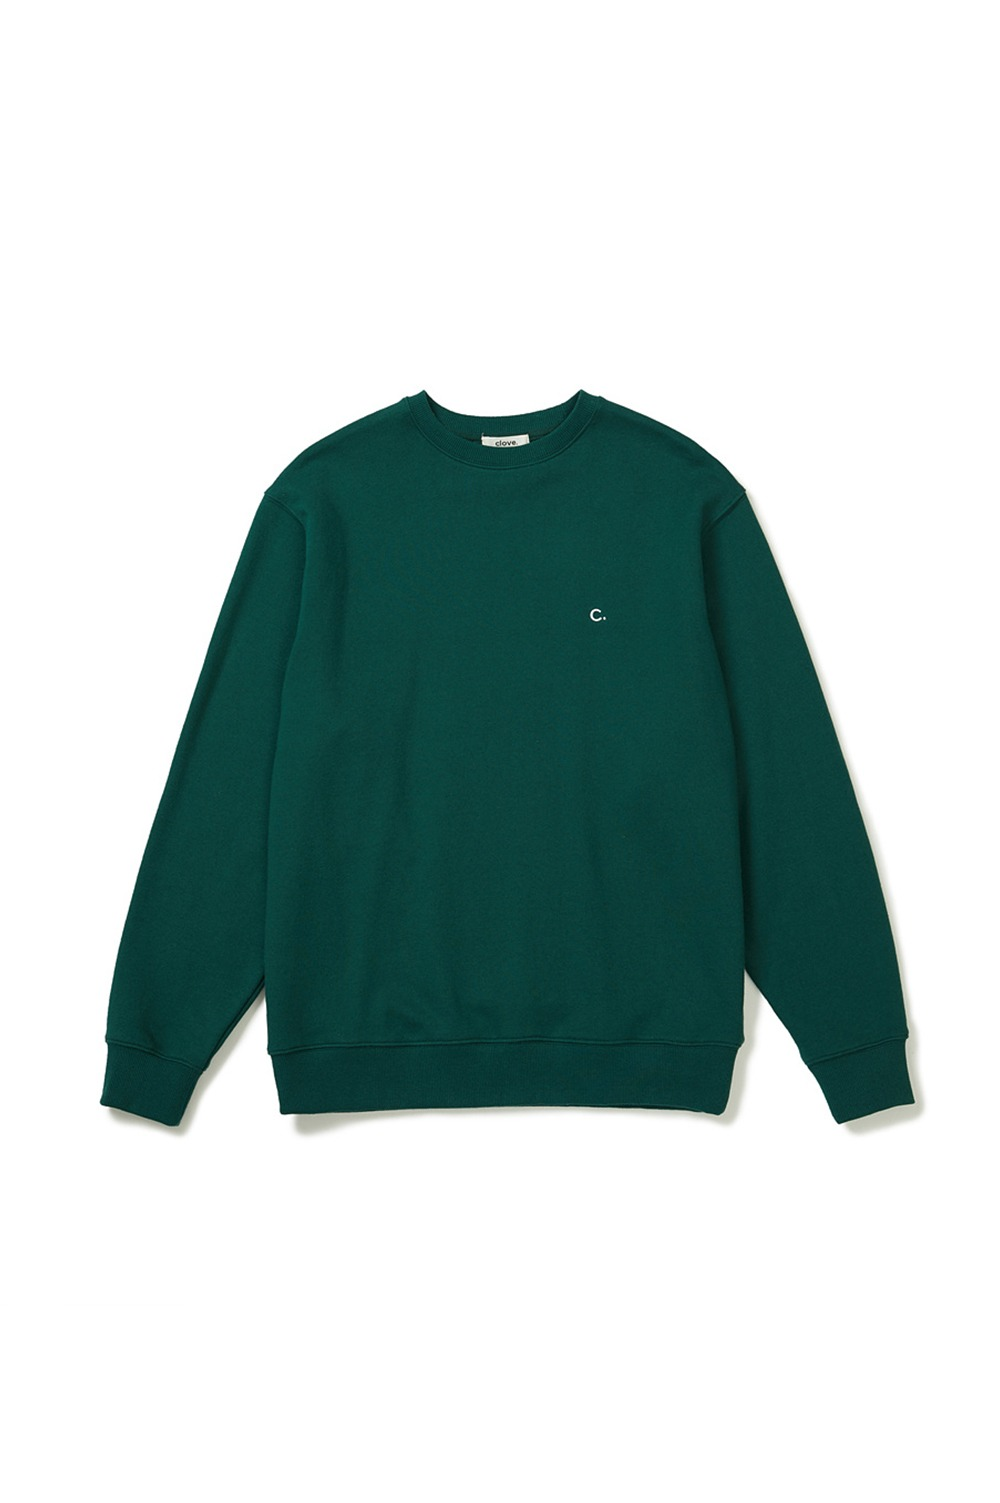 New Active Sweatshirts (Green)